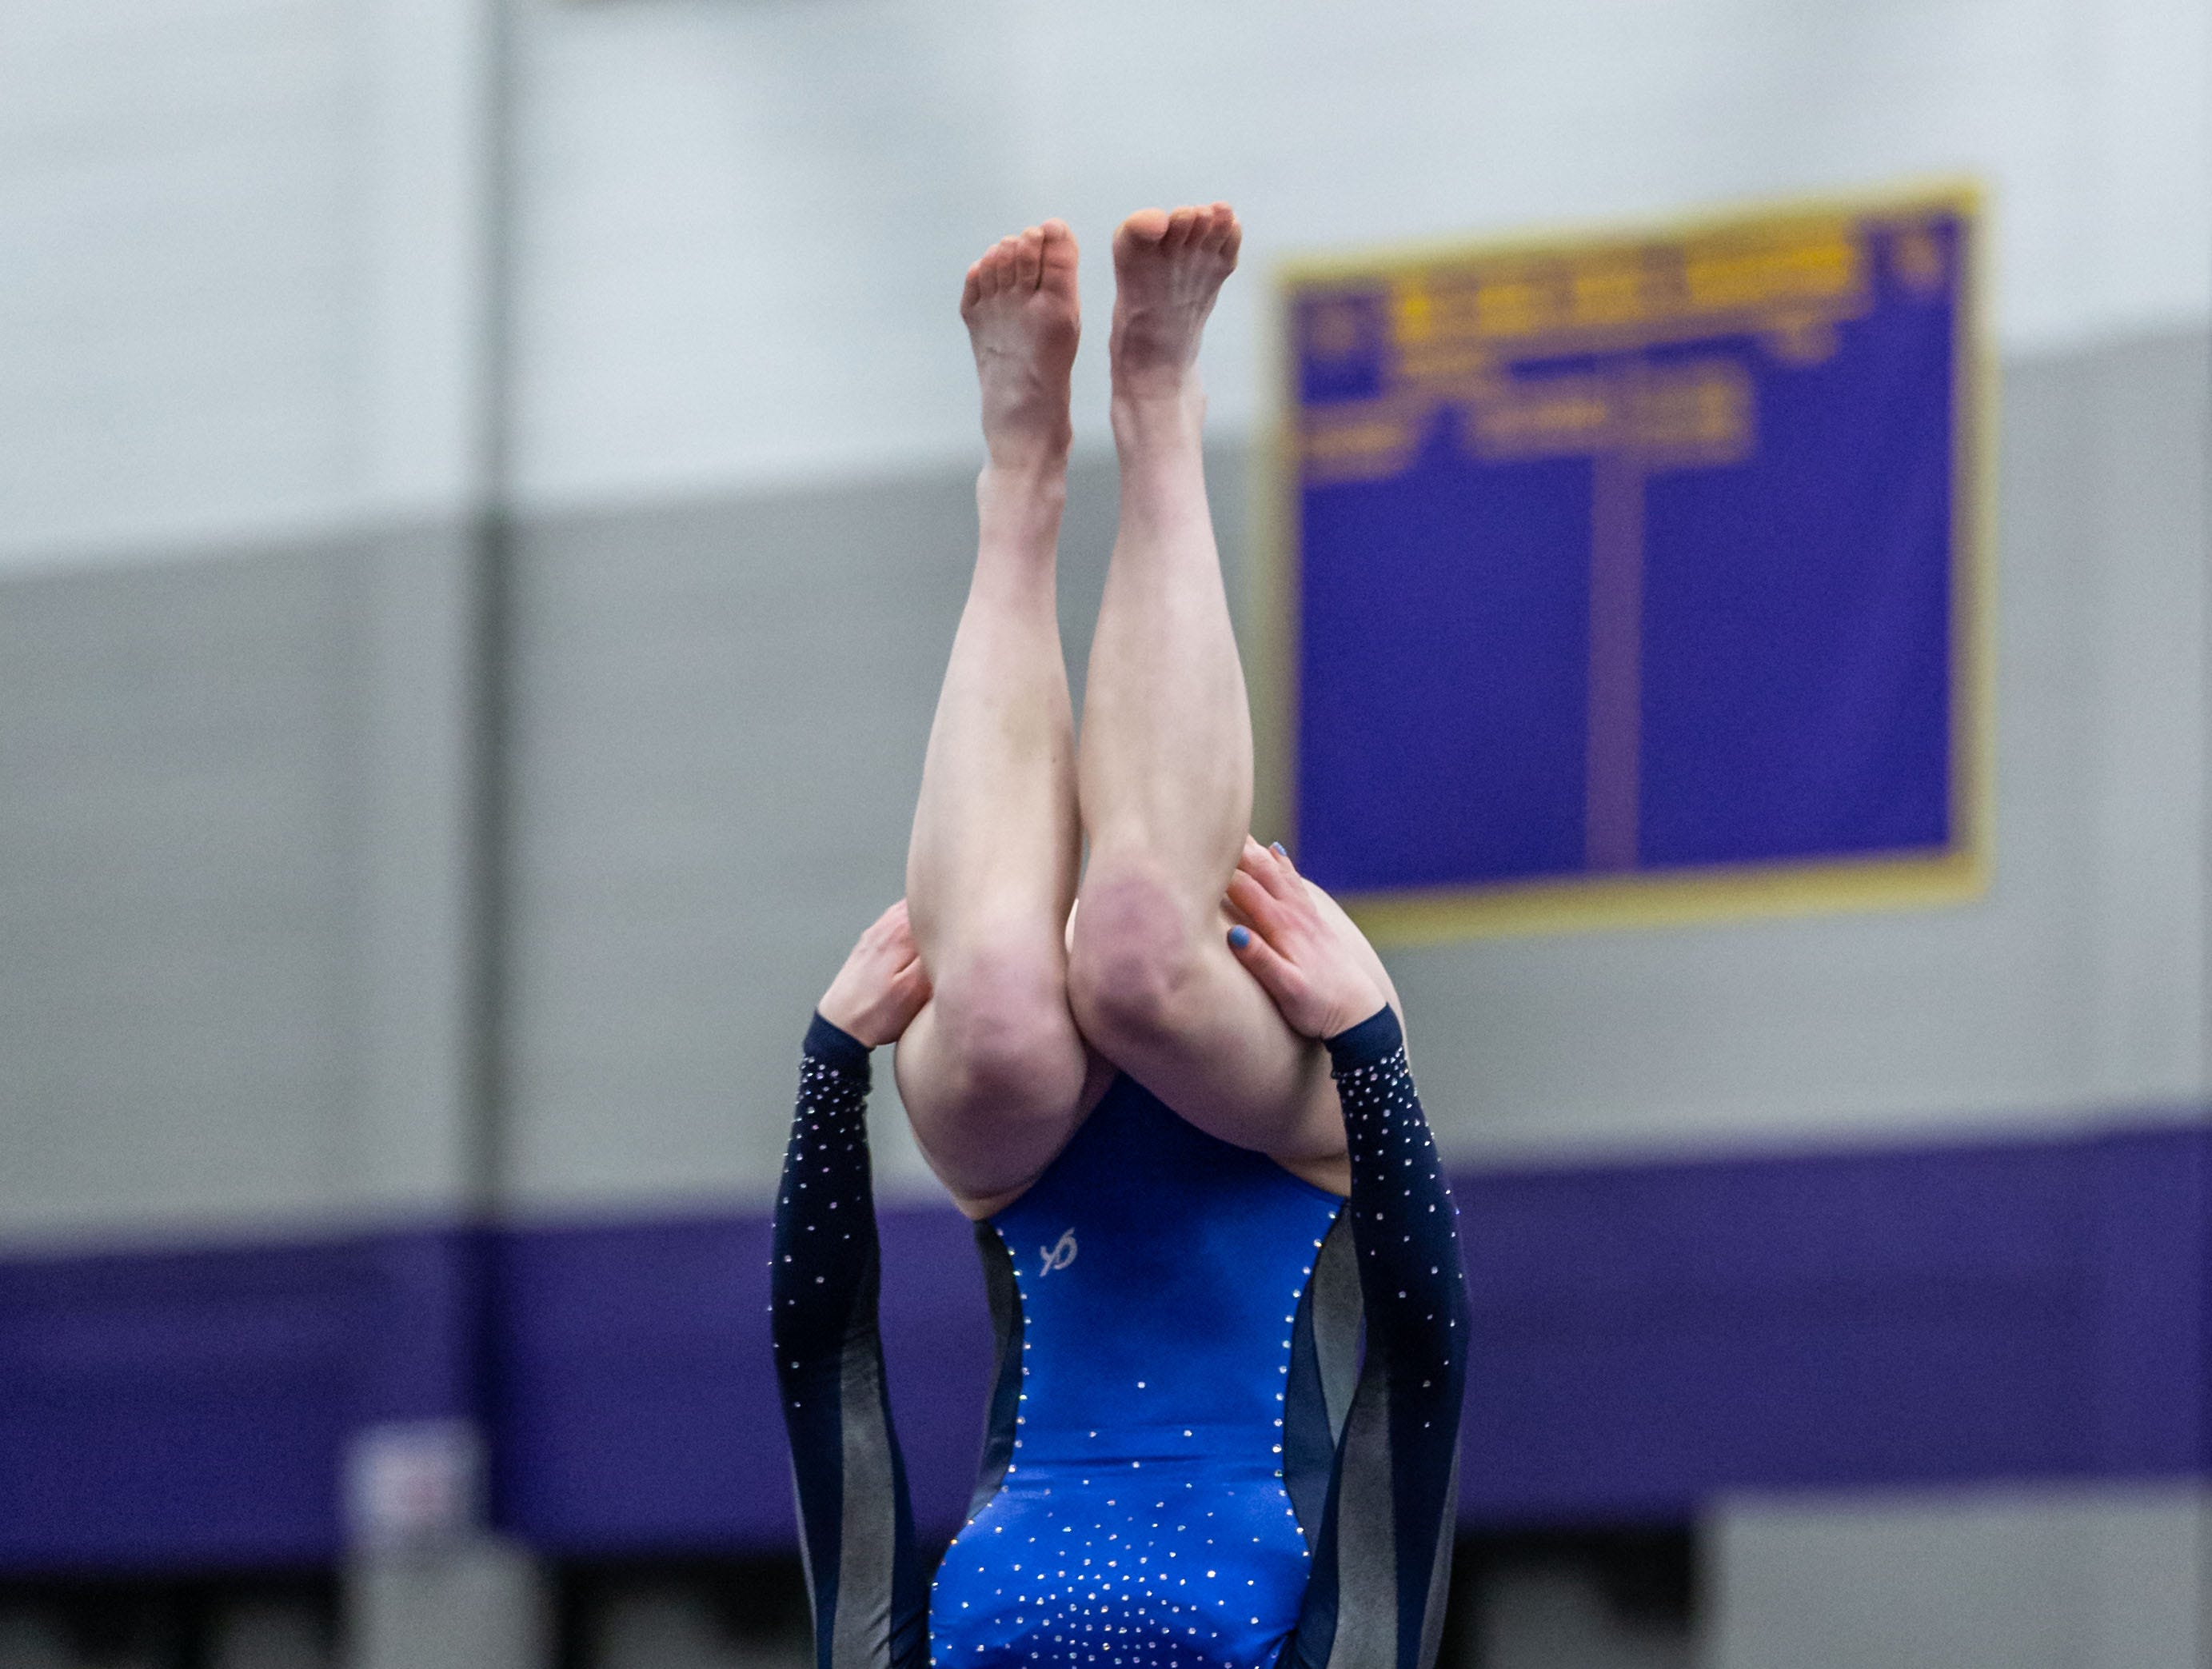 Brookfield co-op gymnast Molly Meves competes on the floor during the Division 1 sectional at Oconomowoc on Friday, Feb. 22, 2019.